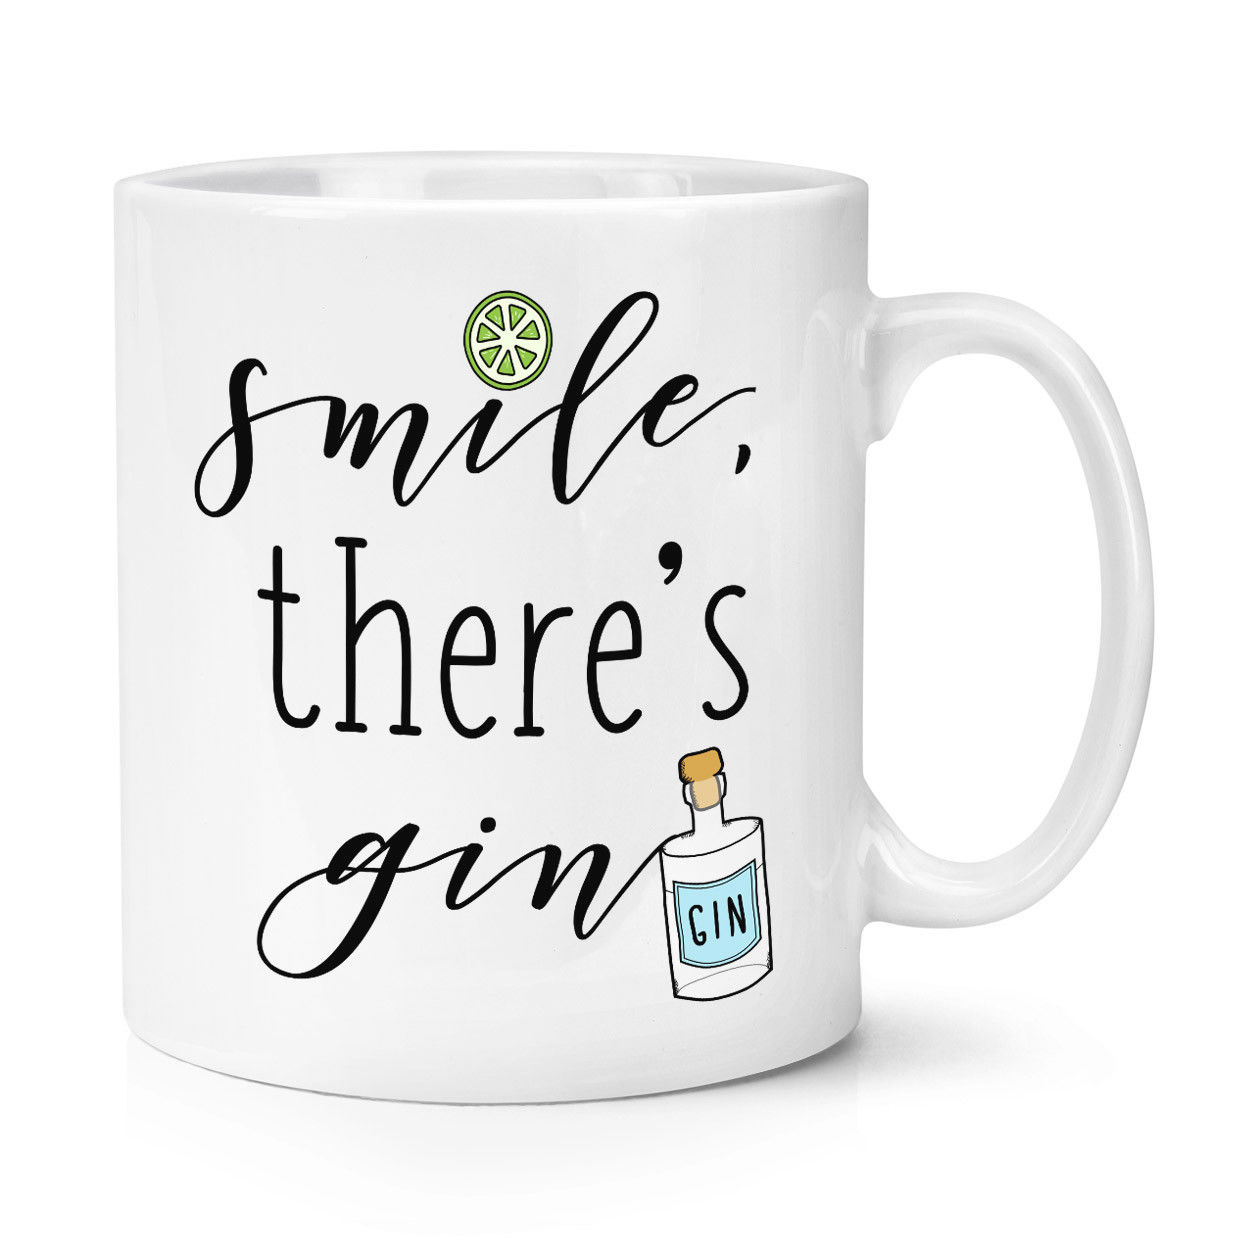 Alcohol Funny Gin There's Cup Mug Smile 10oz Cocktail Coffee Ceramic Tea Party Tonic b7Iygvf6Y